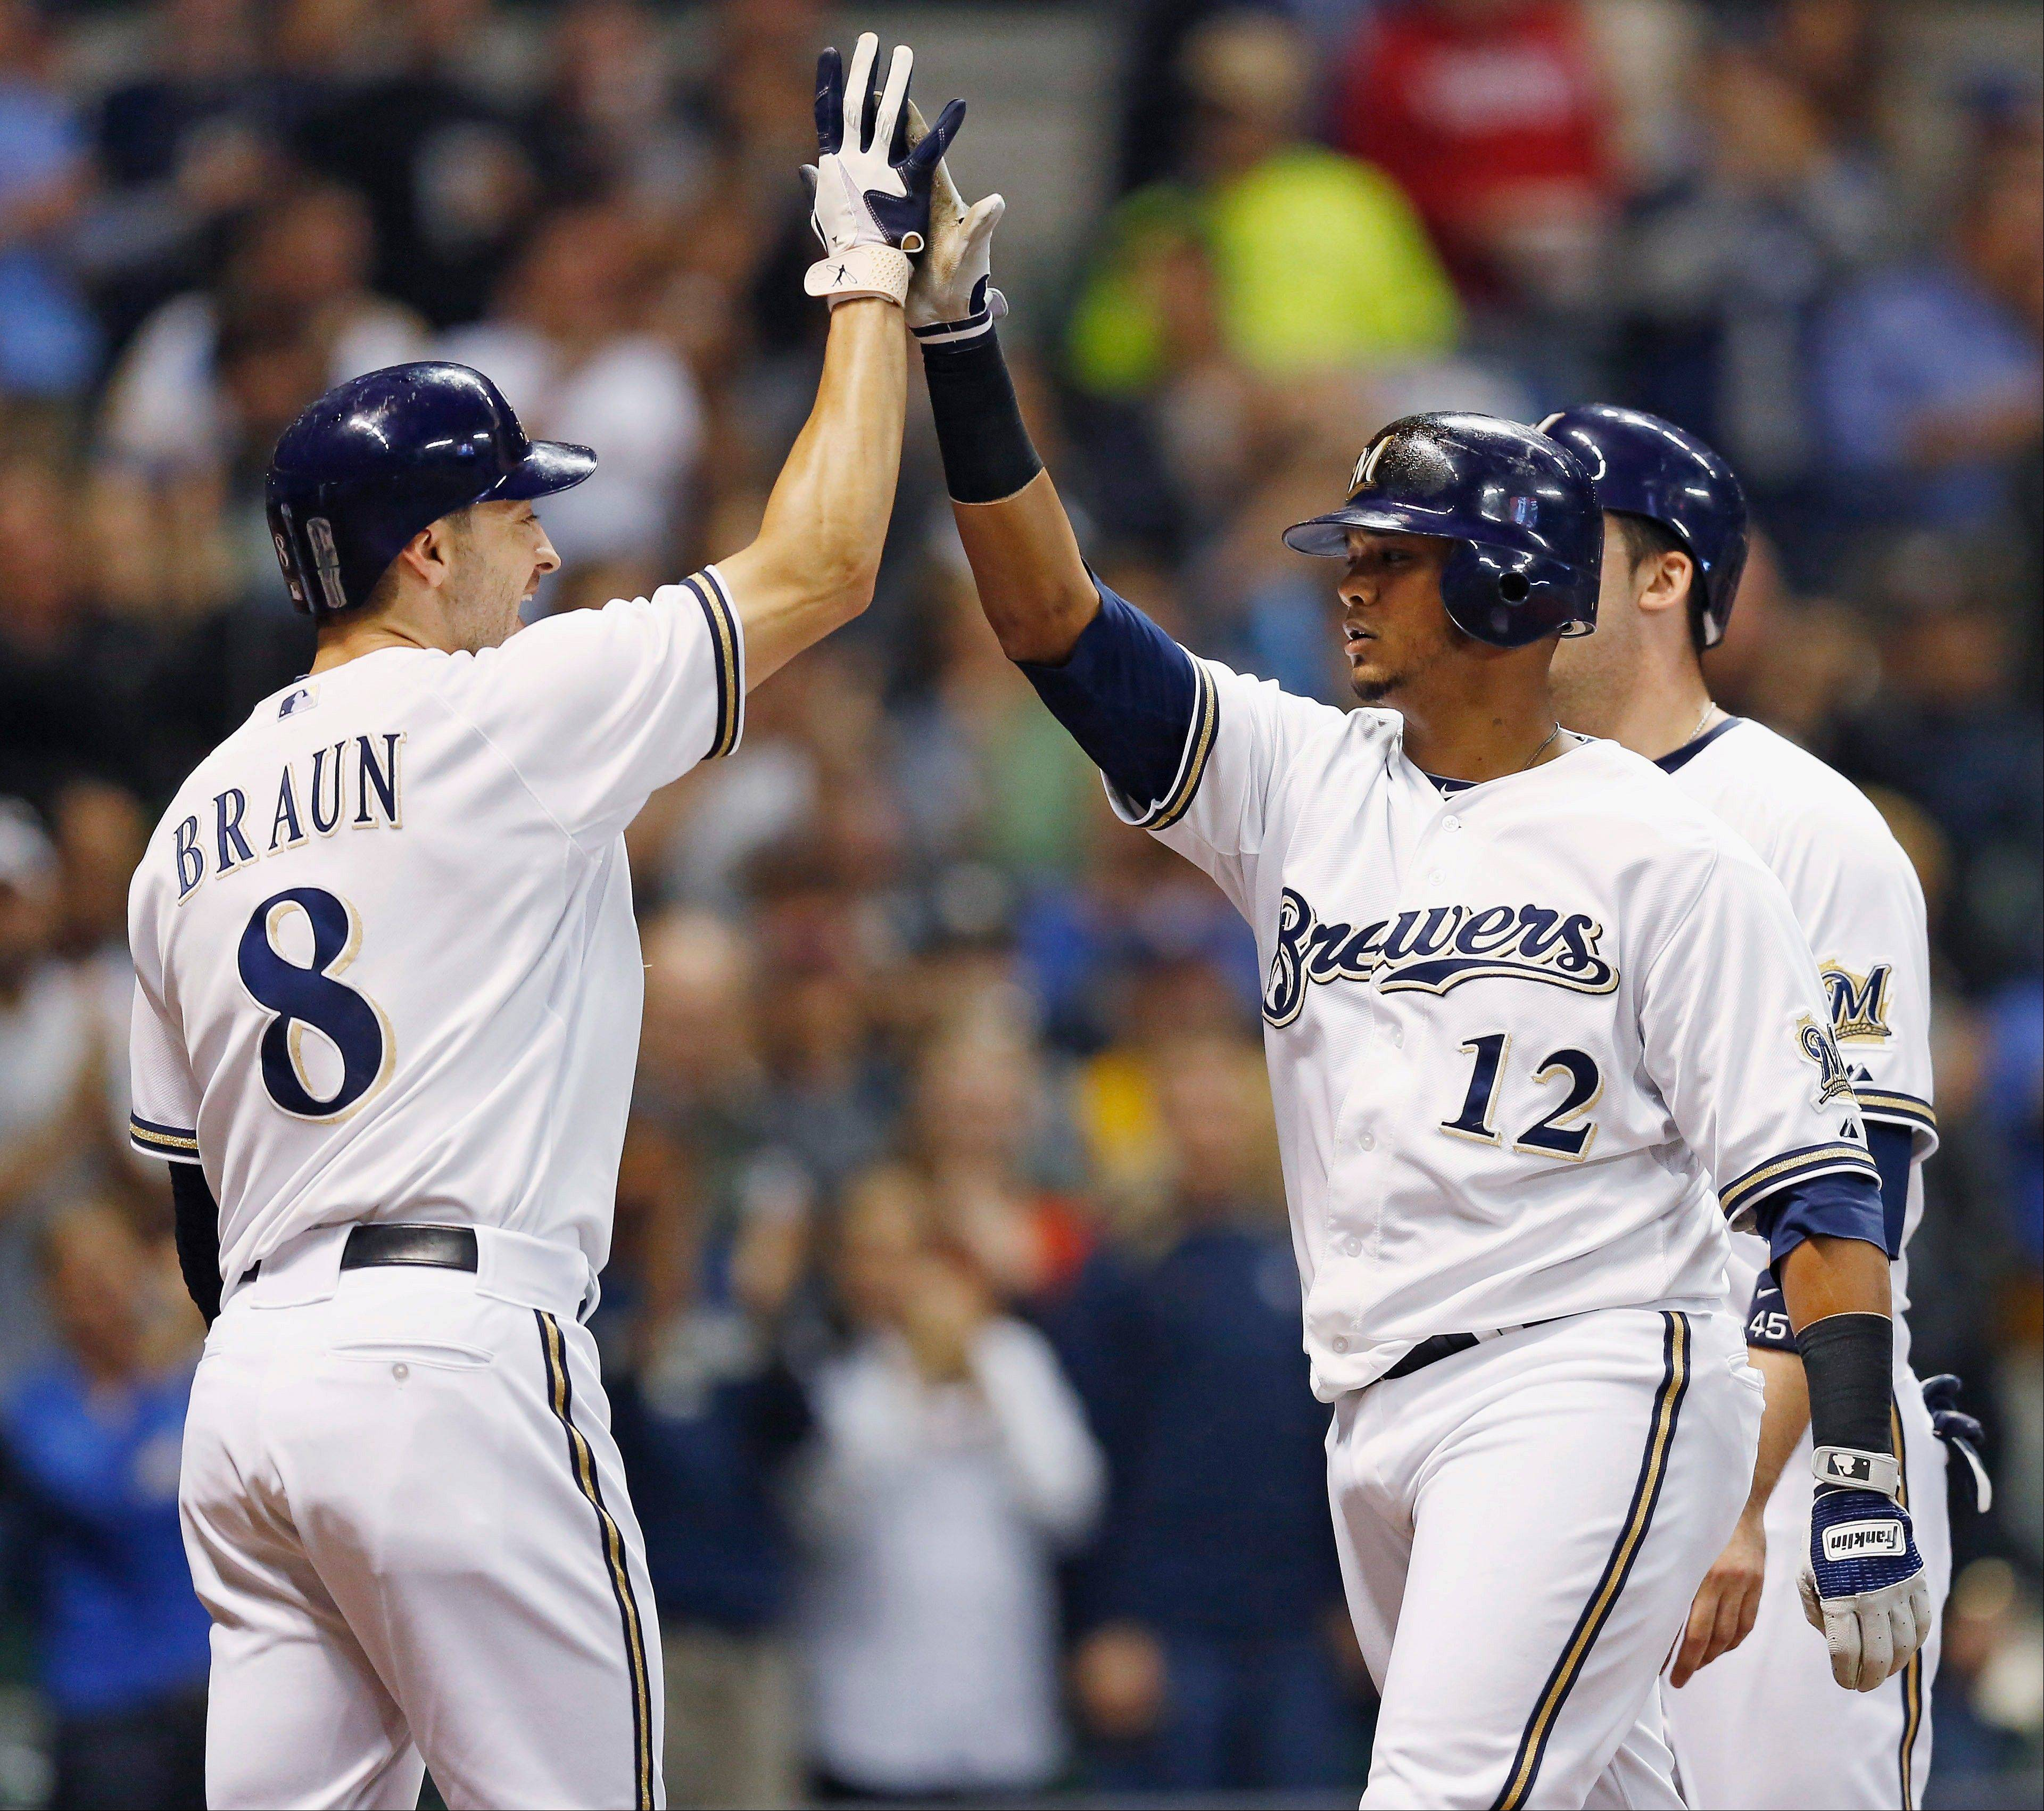 The Brewers� Ryan Braun gives a high-five to Martin Maldonado after Maldonado hit a grand slam off San Diego�s Anthony Bass during the third inning Tuesday in Milwaukee.